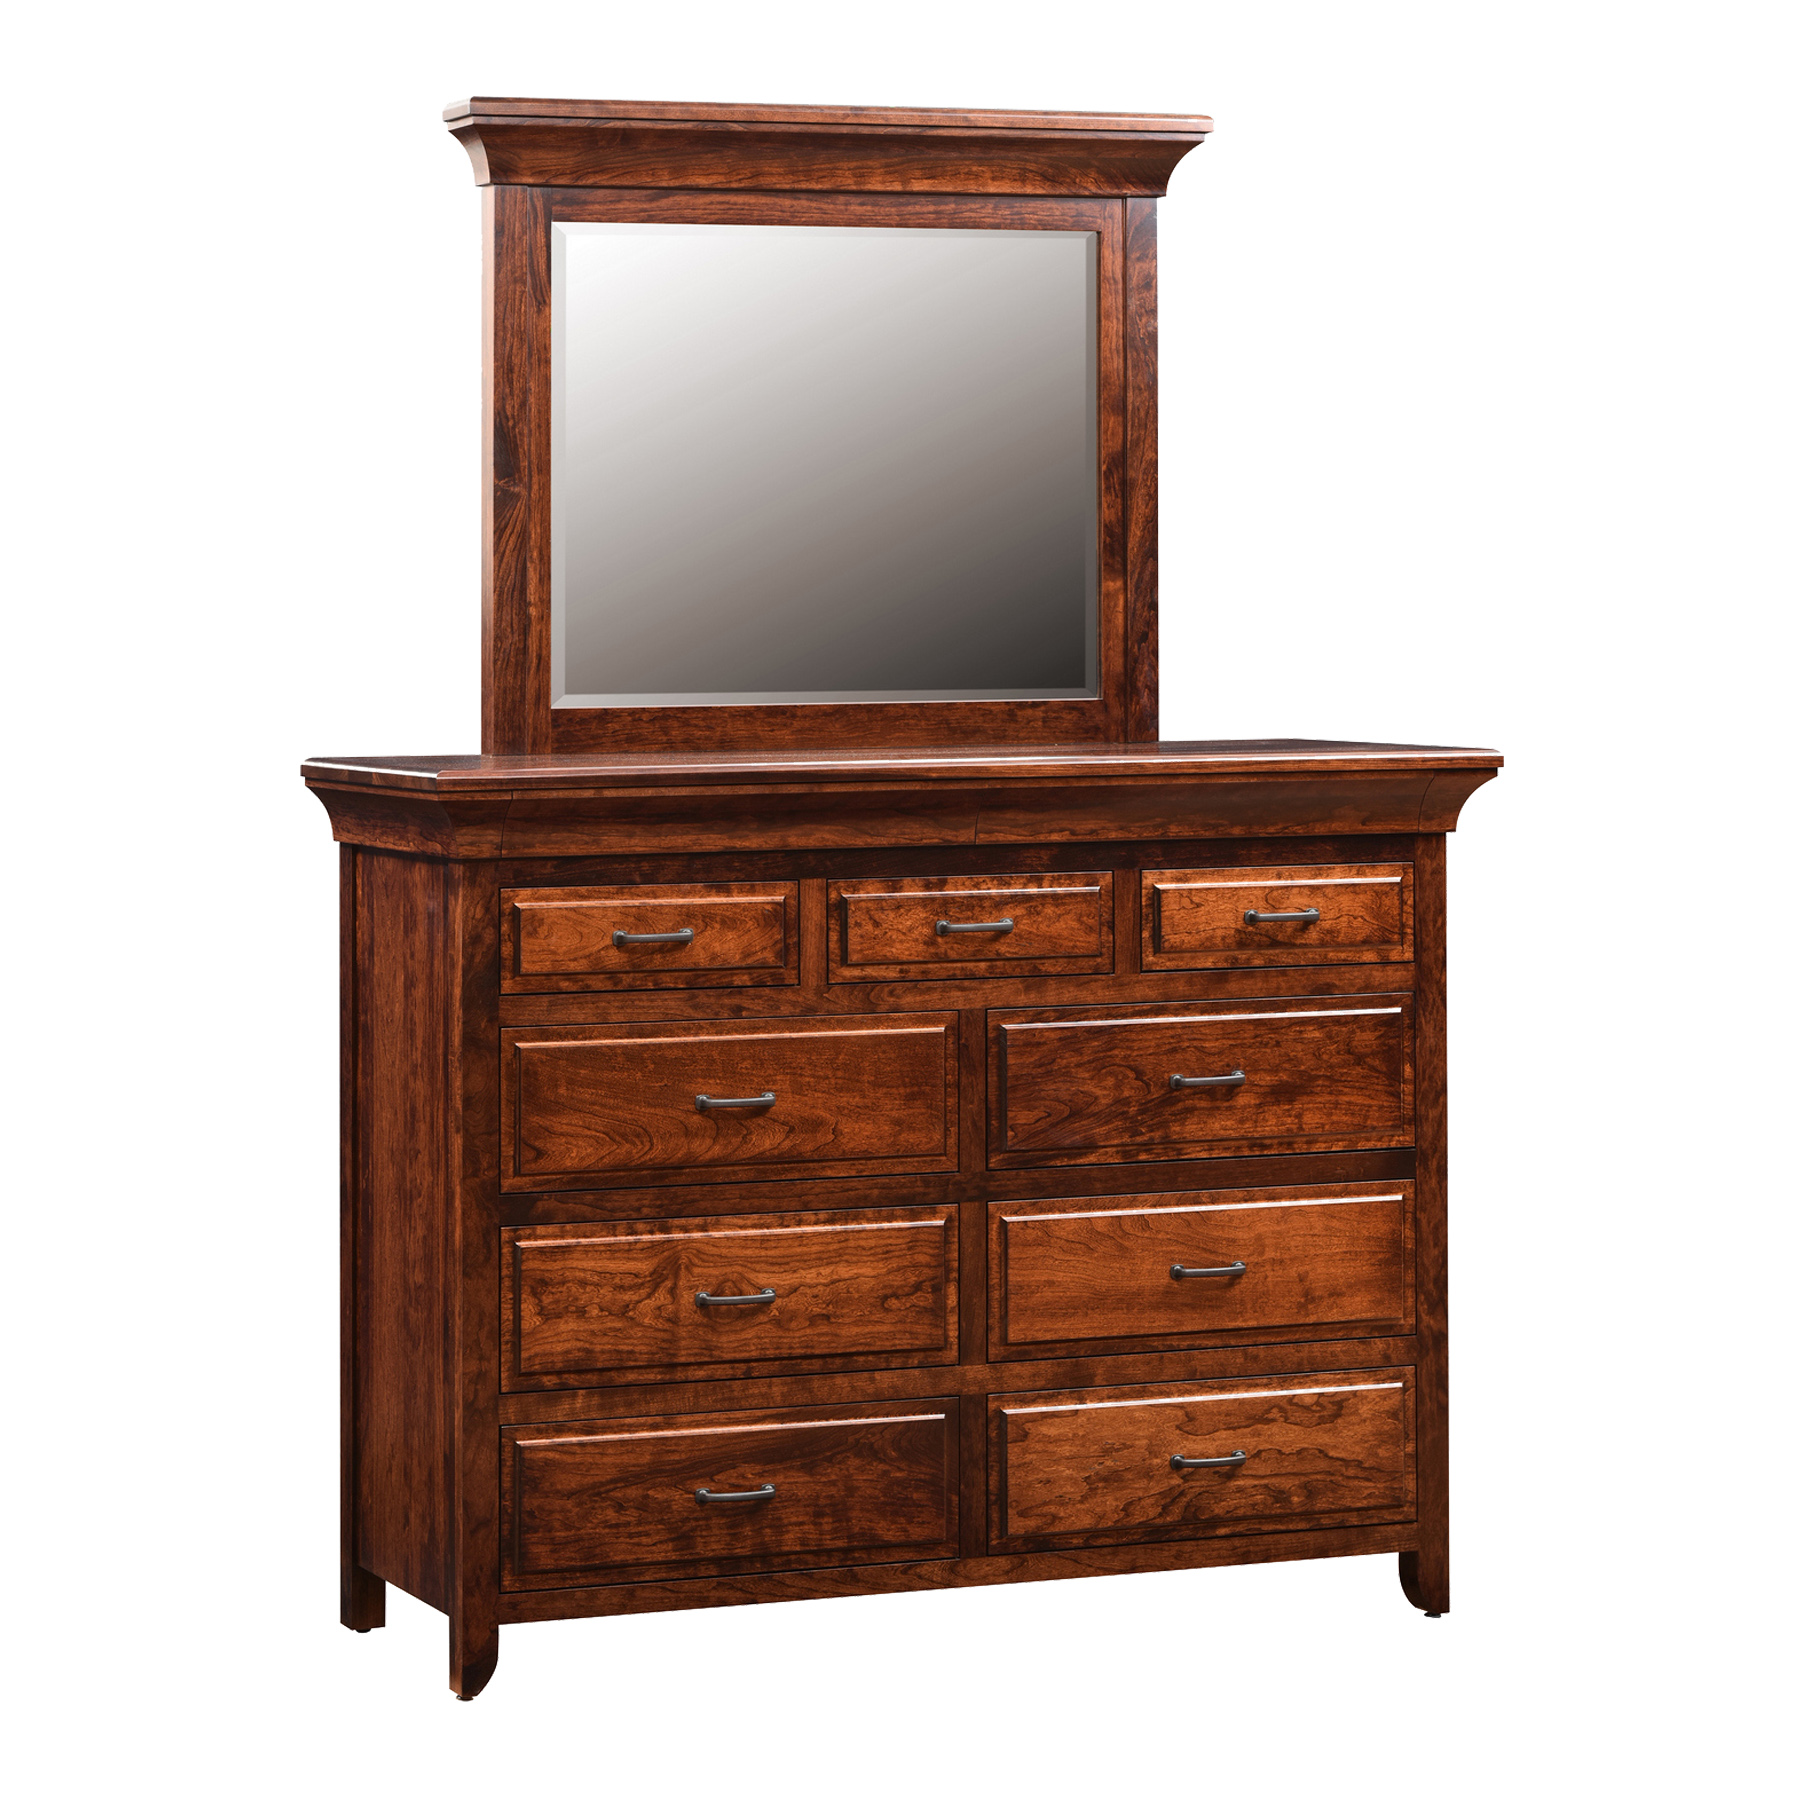 Mule Dresser with Mirror